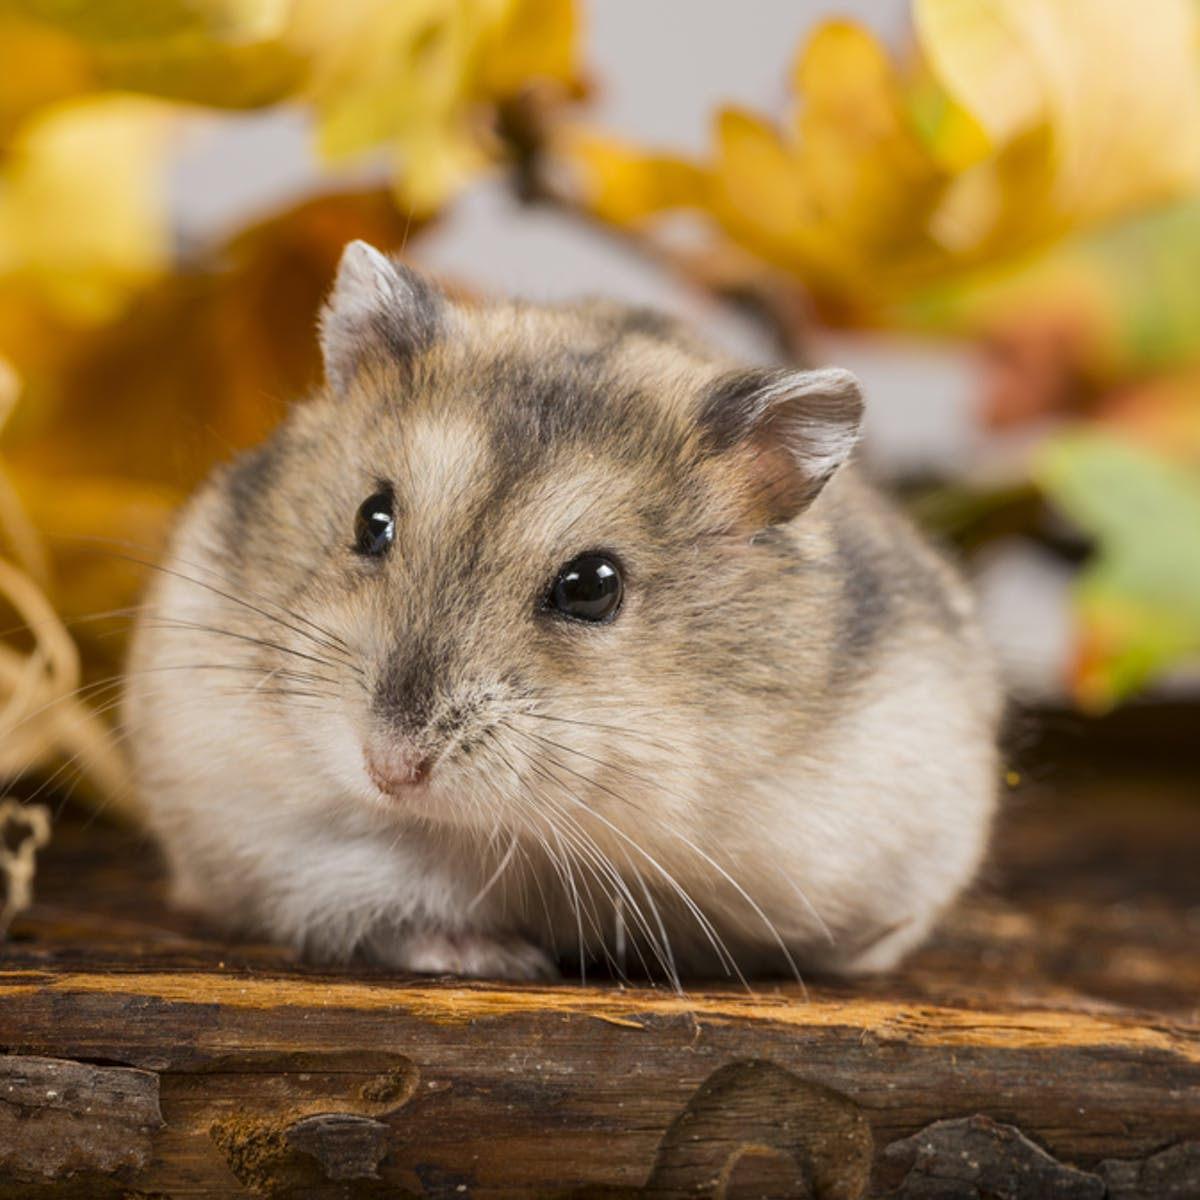 Obesity Hamsters May Hold The Clue To Beating It